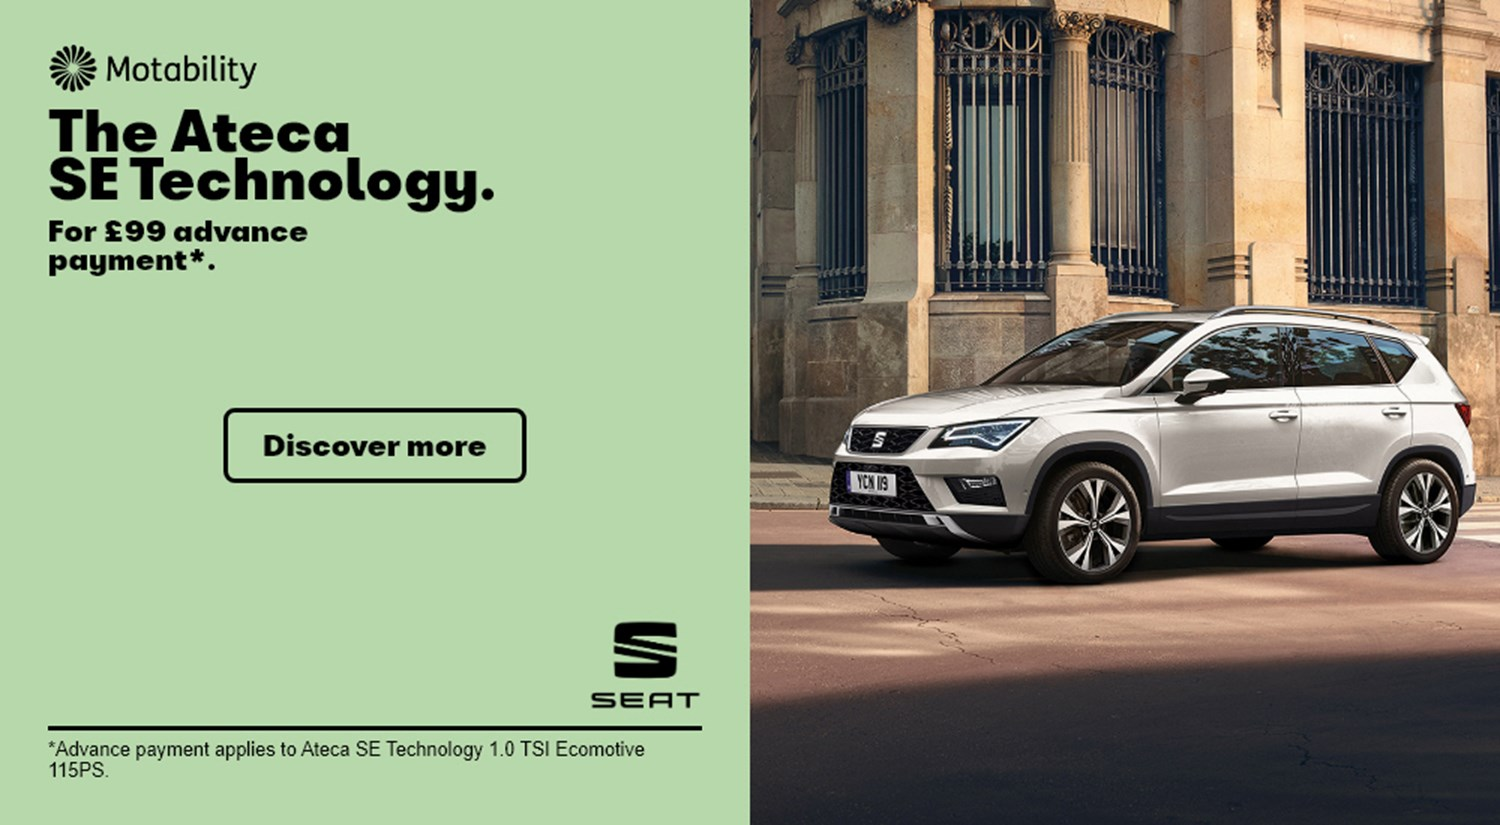 White SEAT Ateca SE Technology parked on road Motability banner